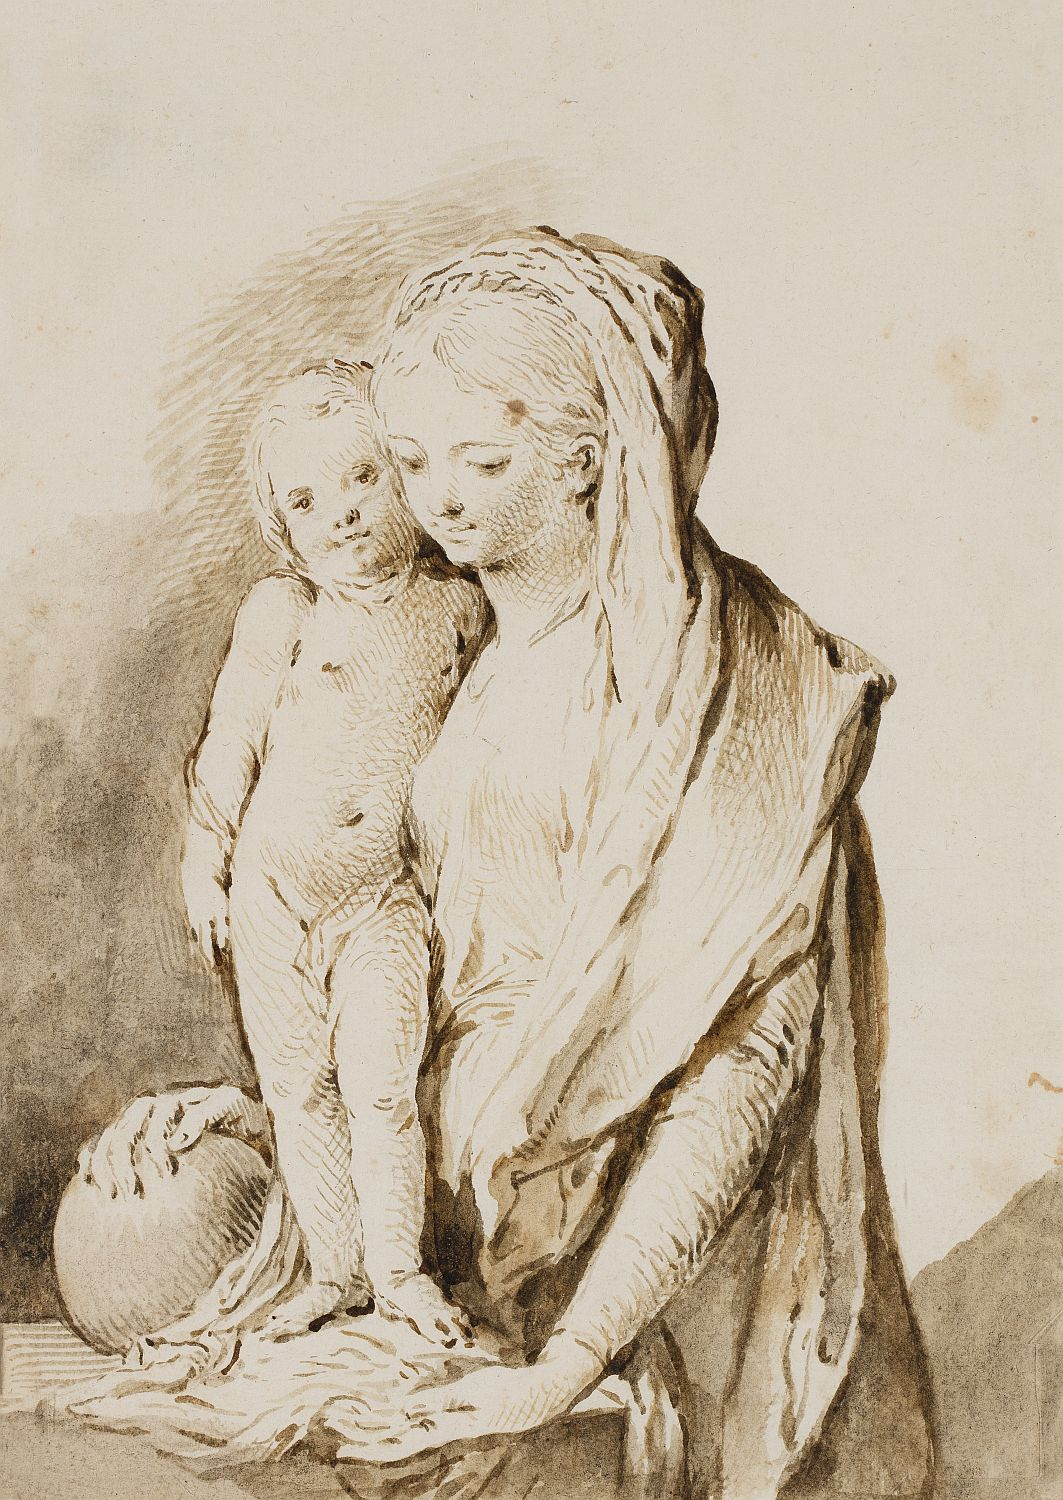 Virgin with Child, José Camarón Bonanat